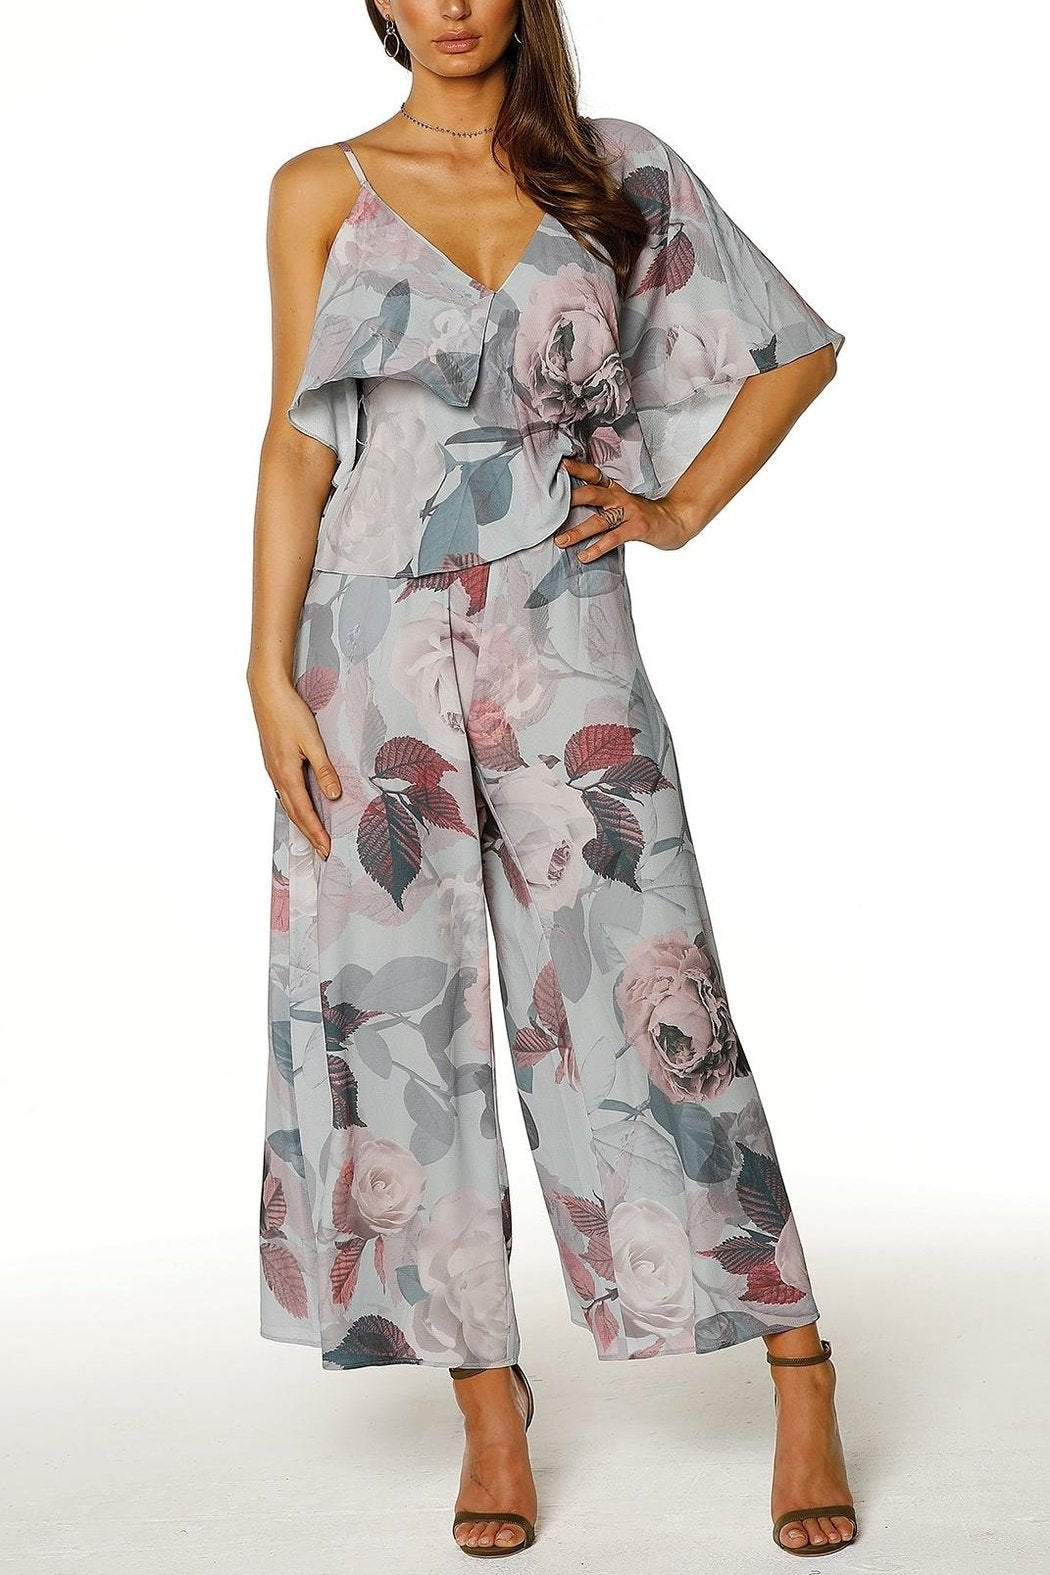 Pasduchas Remi Ruffle Wide Leg Jumpsuit in Floral - Lookbook Boutique